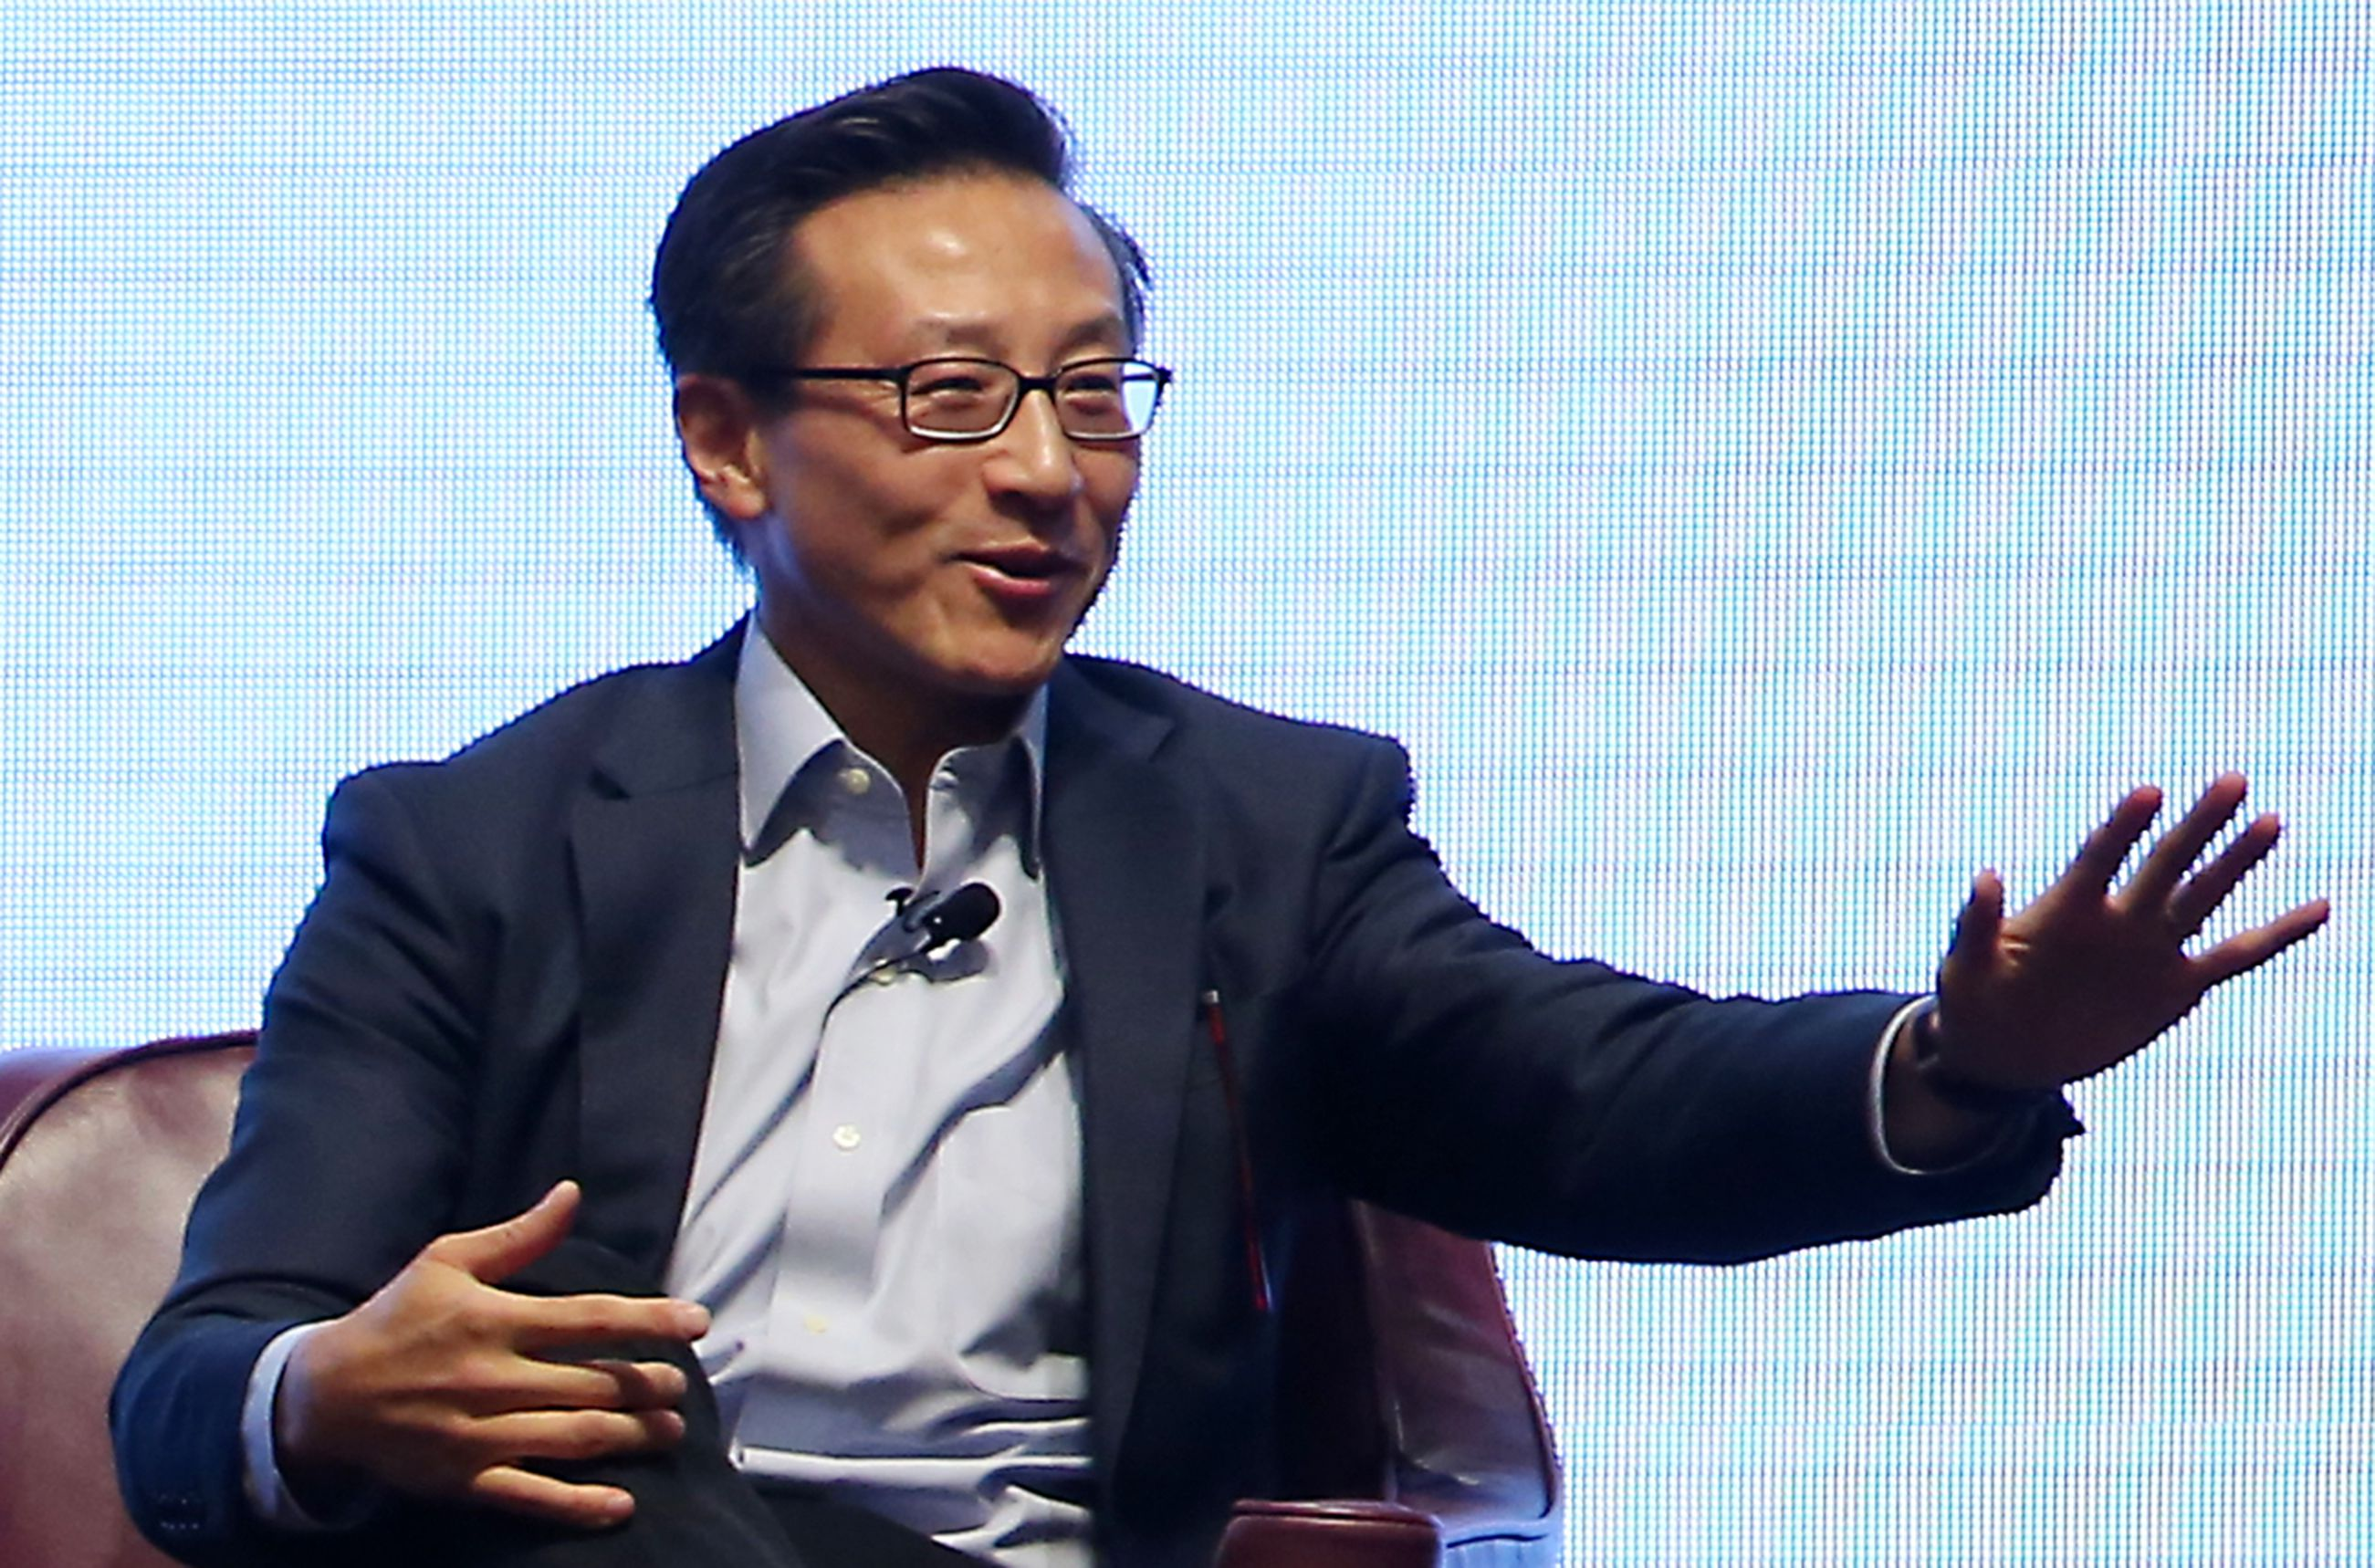 A photo of Joseph Tsai, Executive Vice Chairman, Alibaba Group